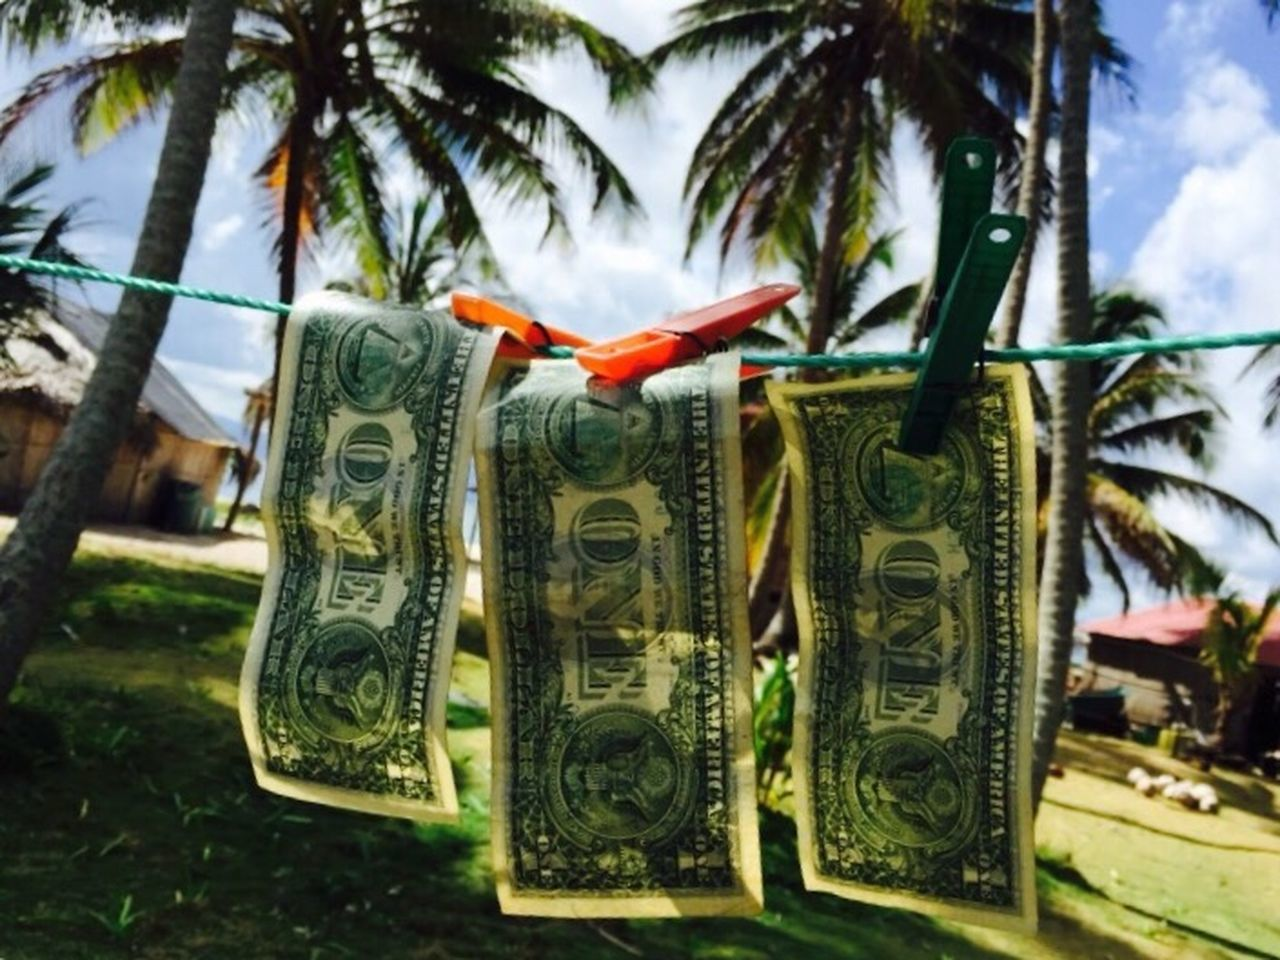 paper currency, currency, focus on foreground, finance, day, business, tree, plant, palm tree, no people, close-up, wealth, text, nature, hanging, growth, tropical climate, animal, animal themes, representation